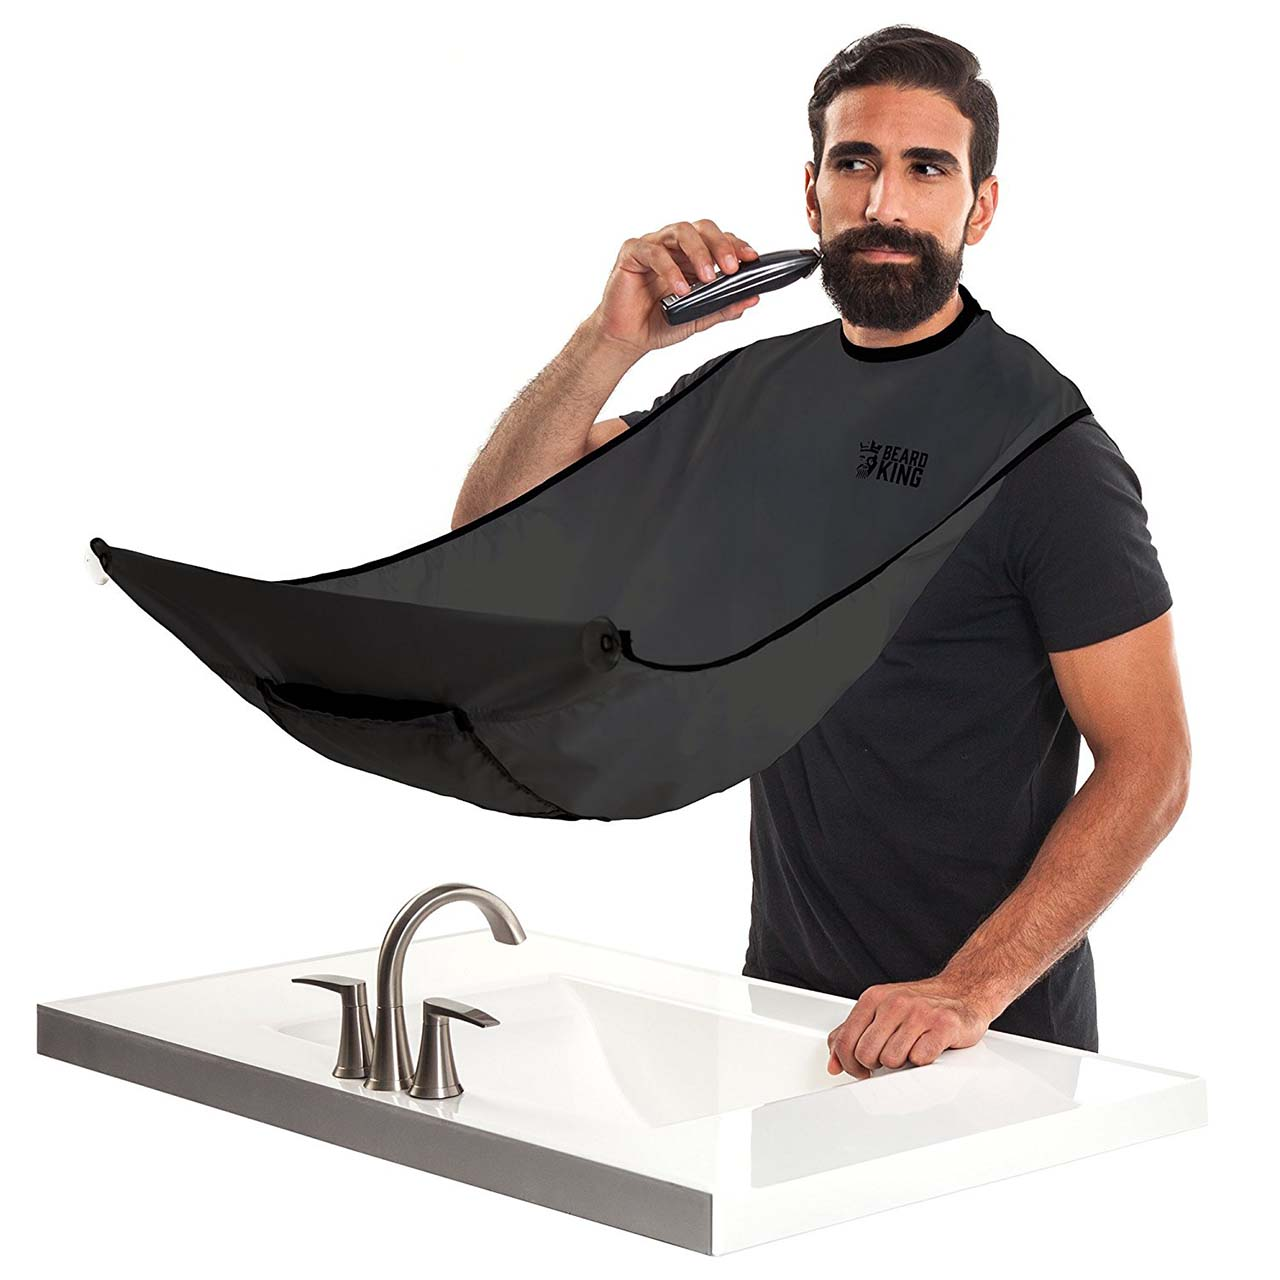 11 Classy Items You Can Buy Under $20 On Amazon #11: Beard Catcher